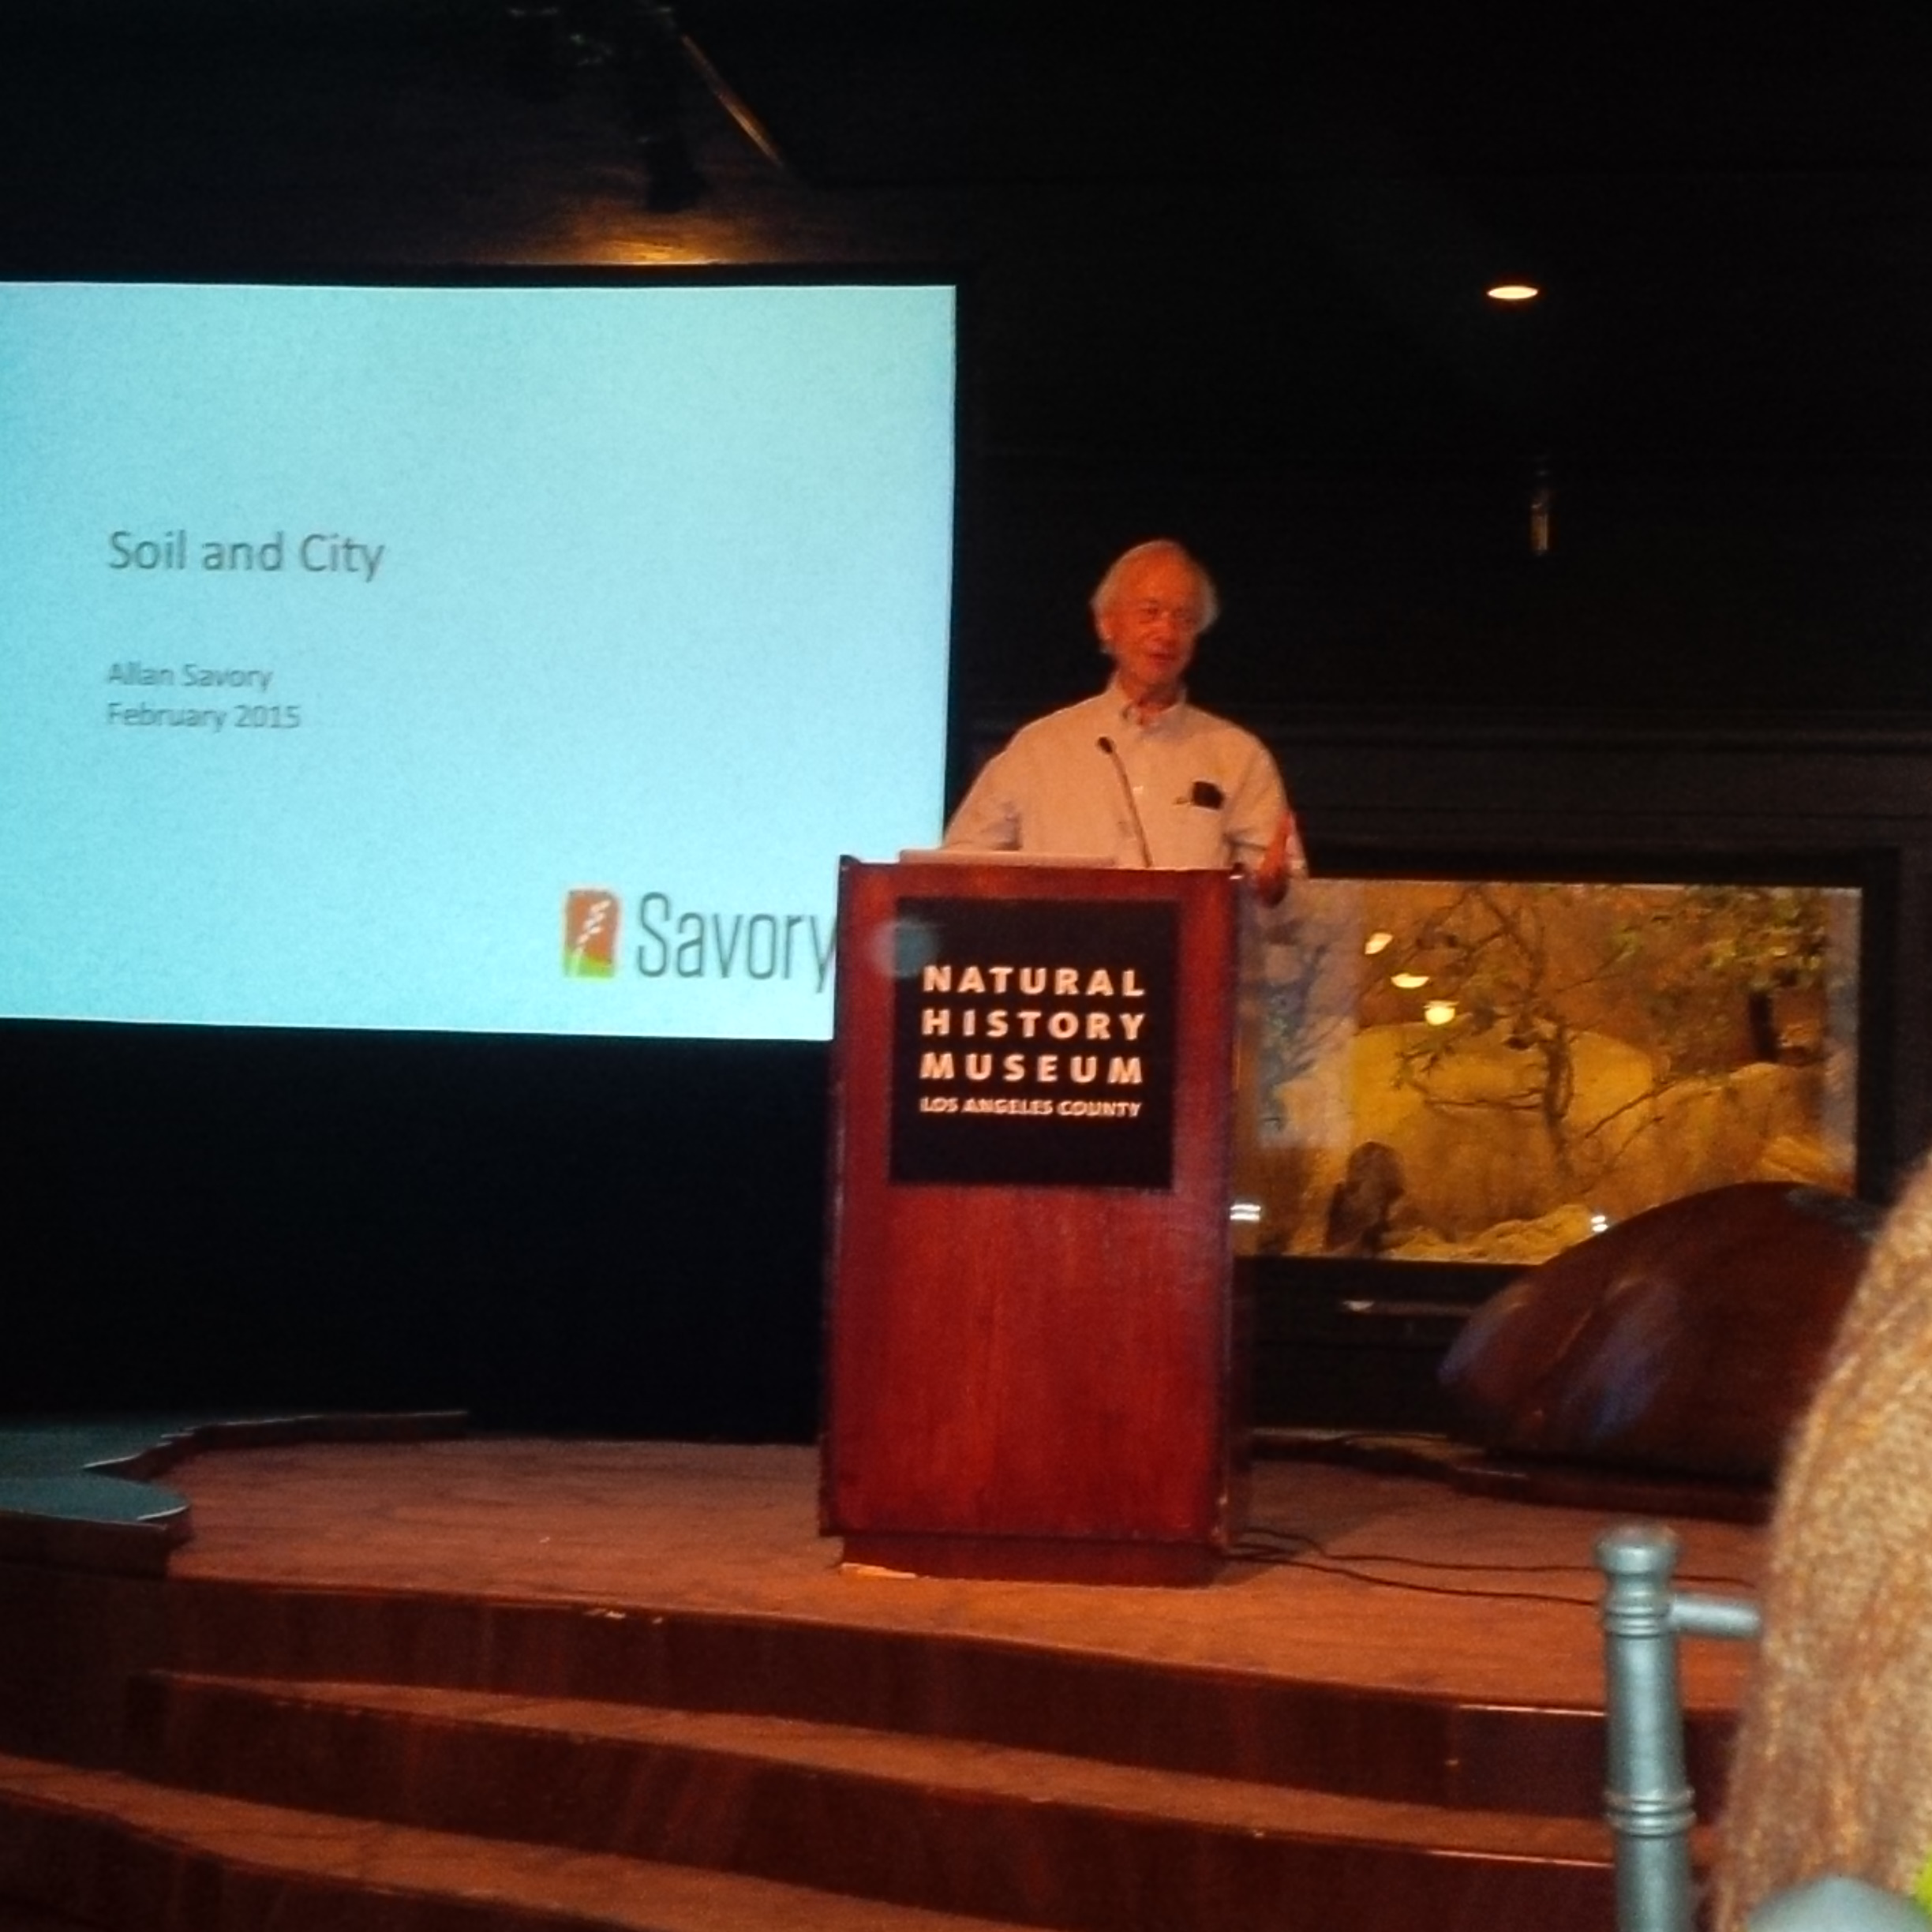 Allan Savory proposes that we can claim our desertified grasslands back with a natural approach.